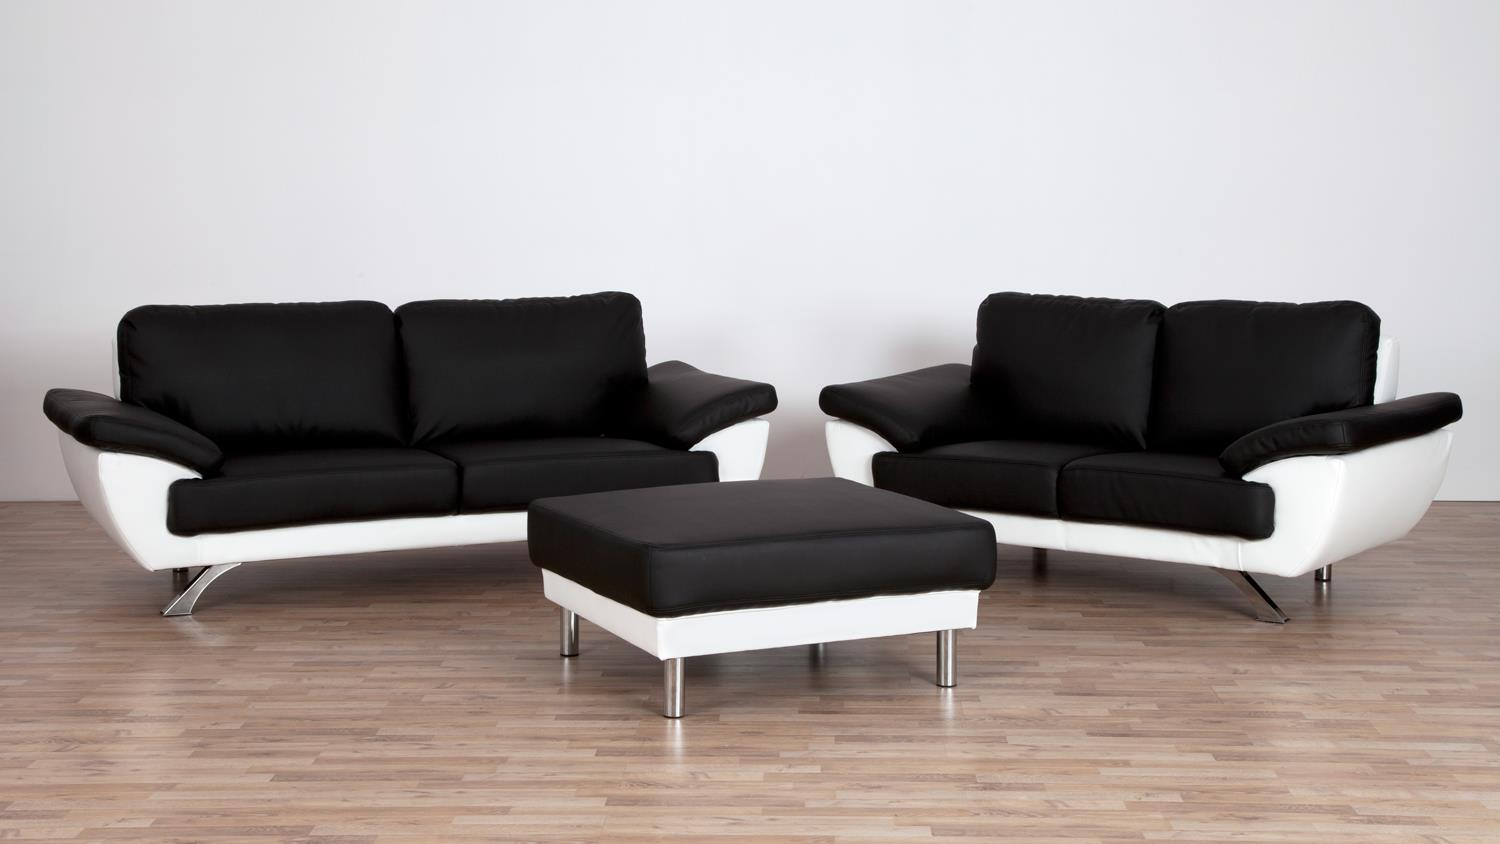 sofagarnitur gino 3 2 hocker garnitur bezug schwarz wei nosagfederung. Black Bedroom Furniture Sets. Home Design Ideas